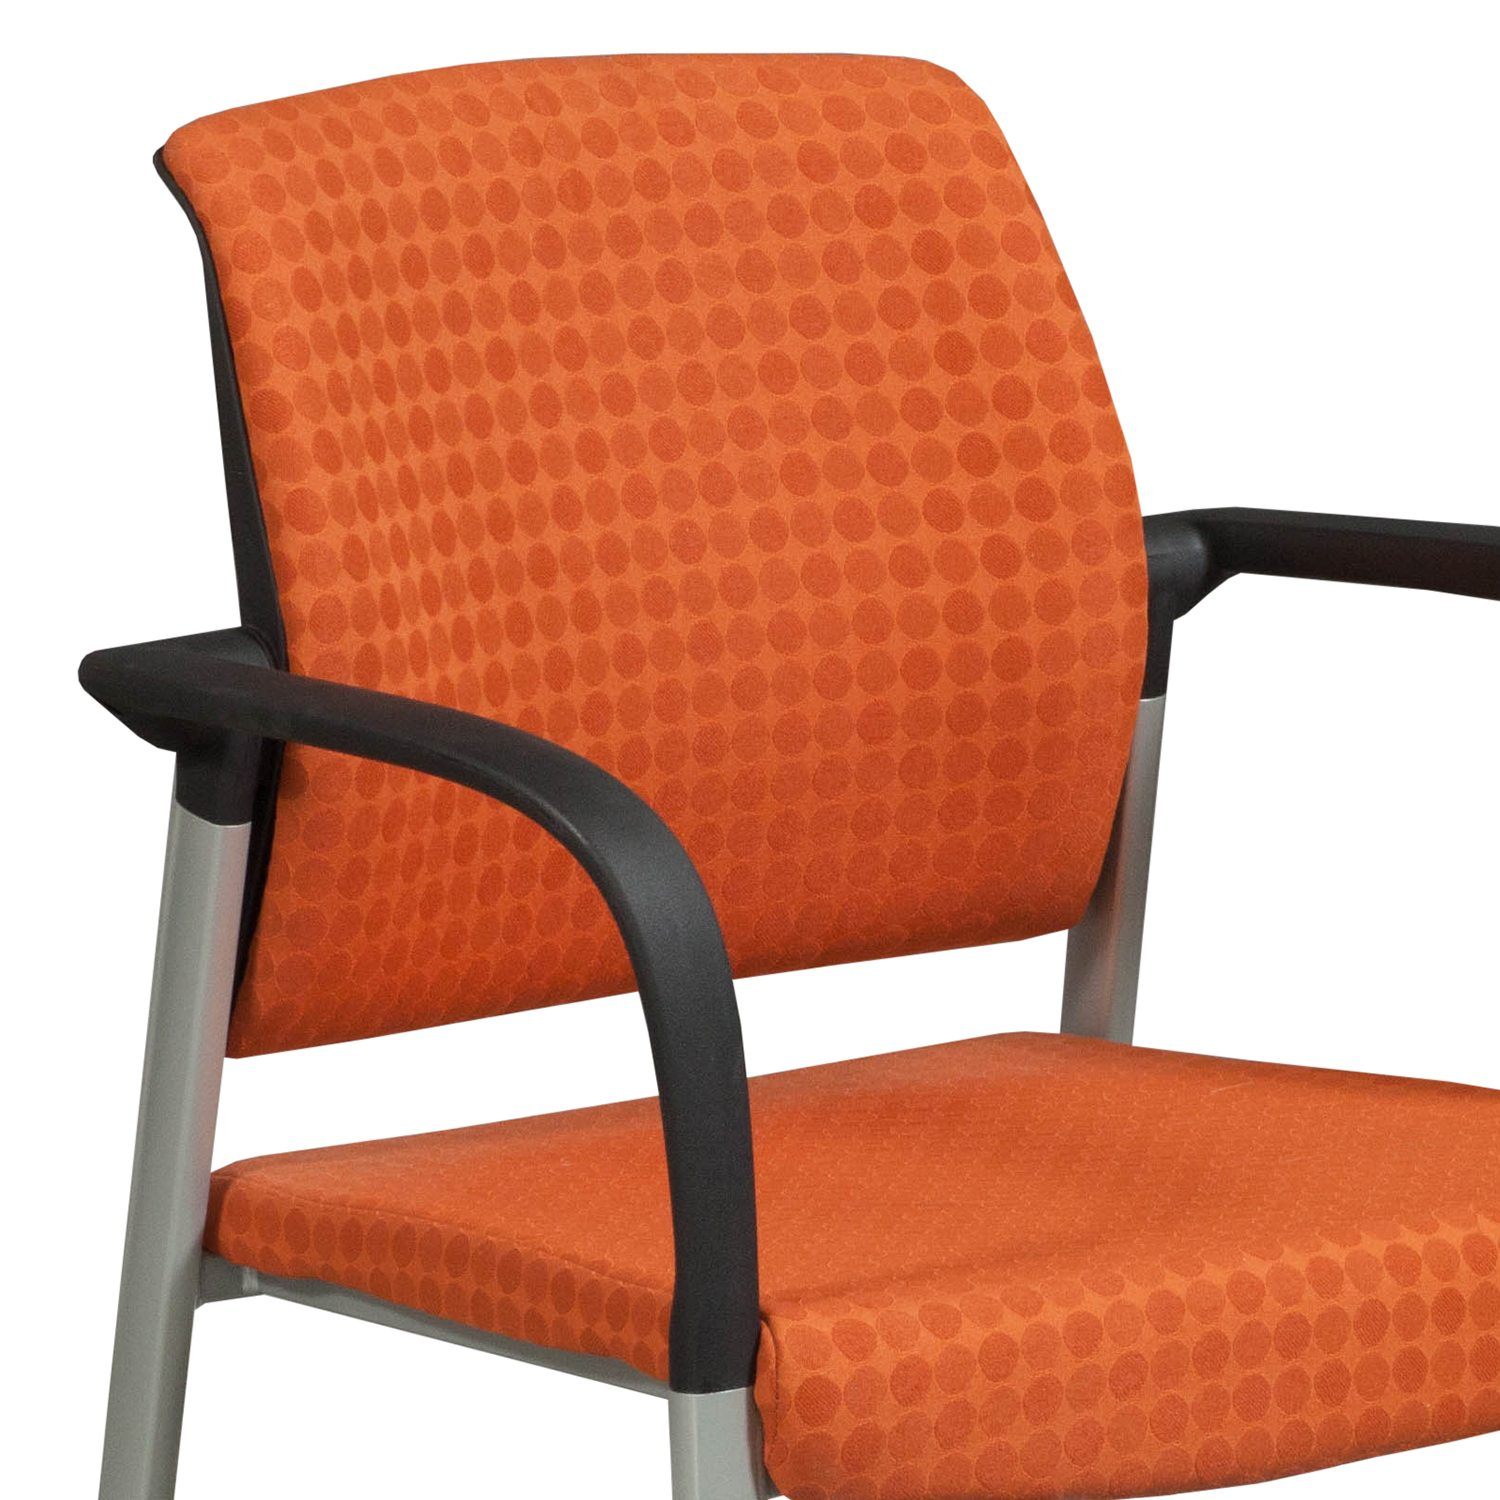 allsteel relate side chair felt christmas covers used stack orange national office